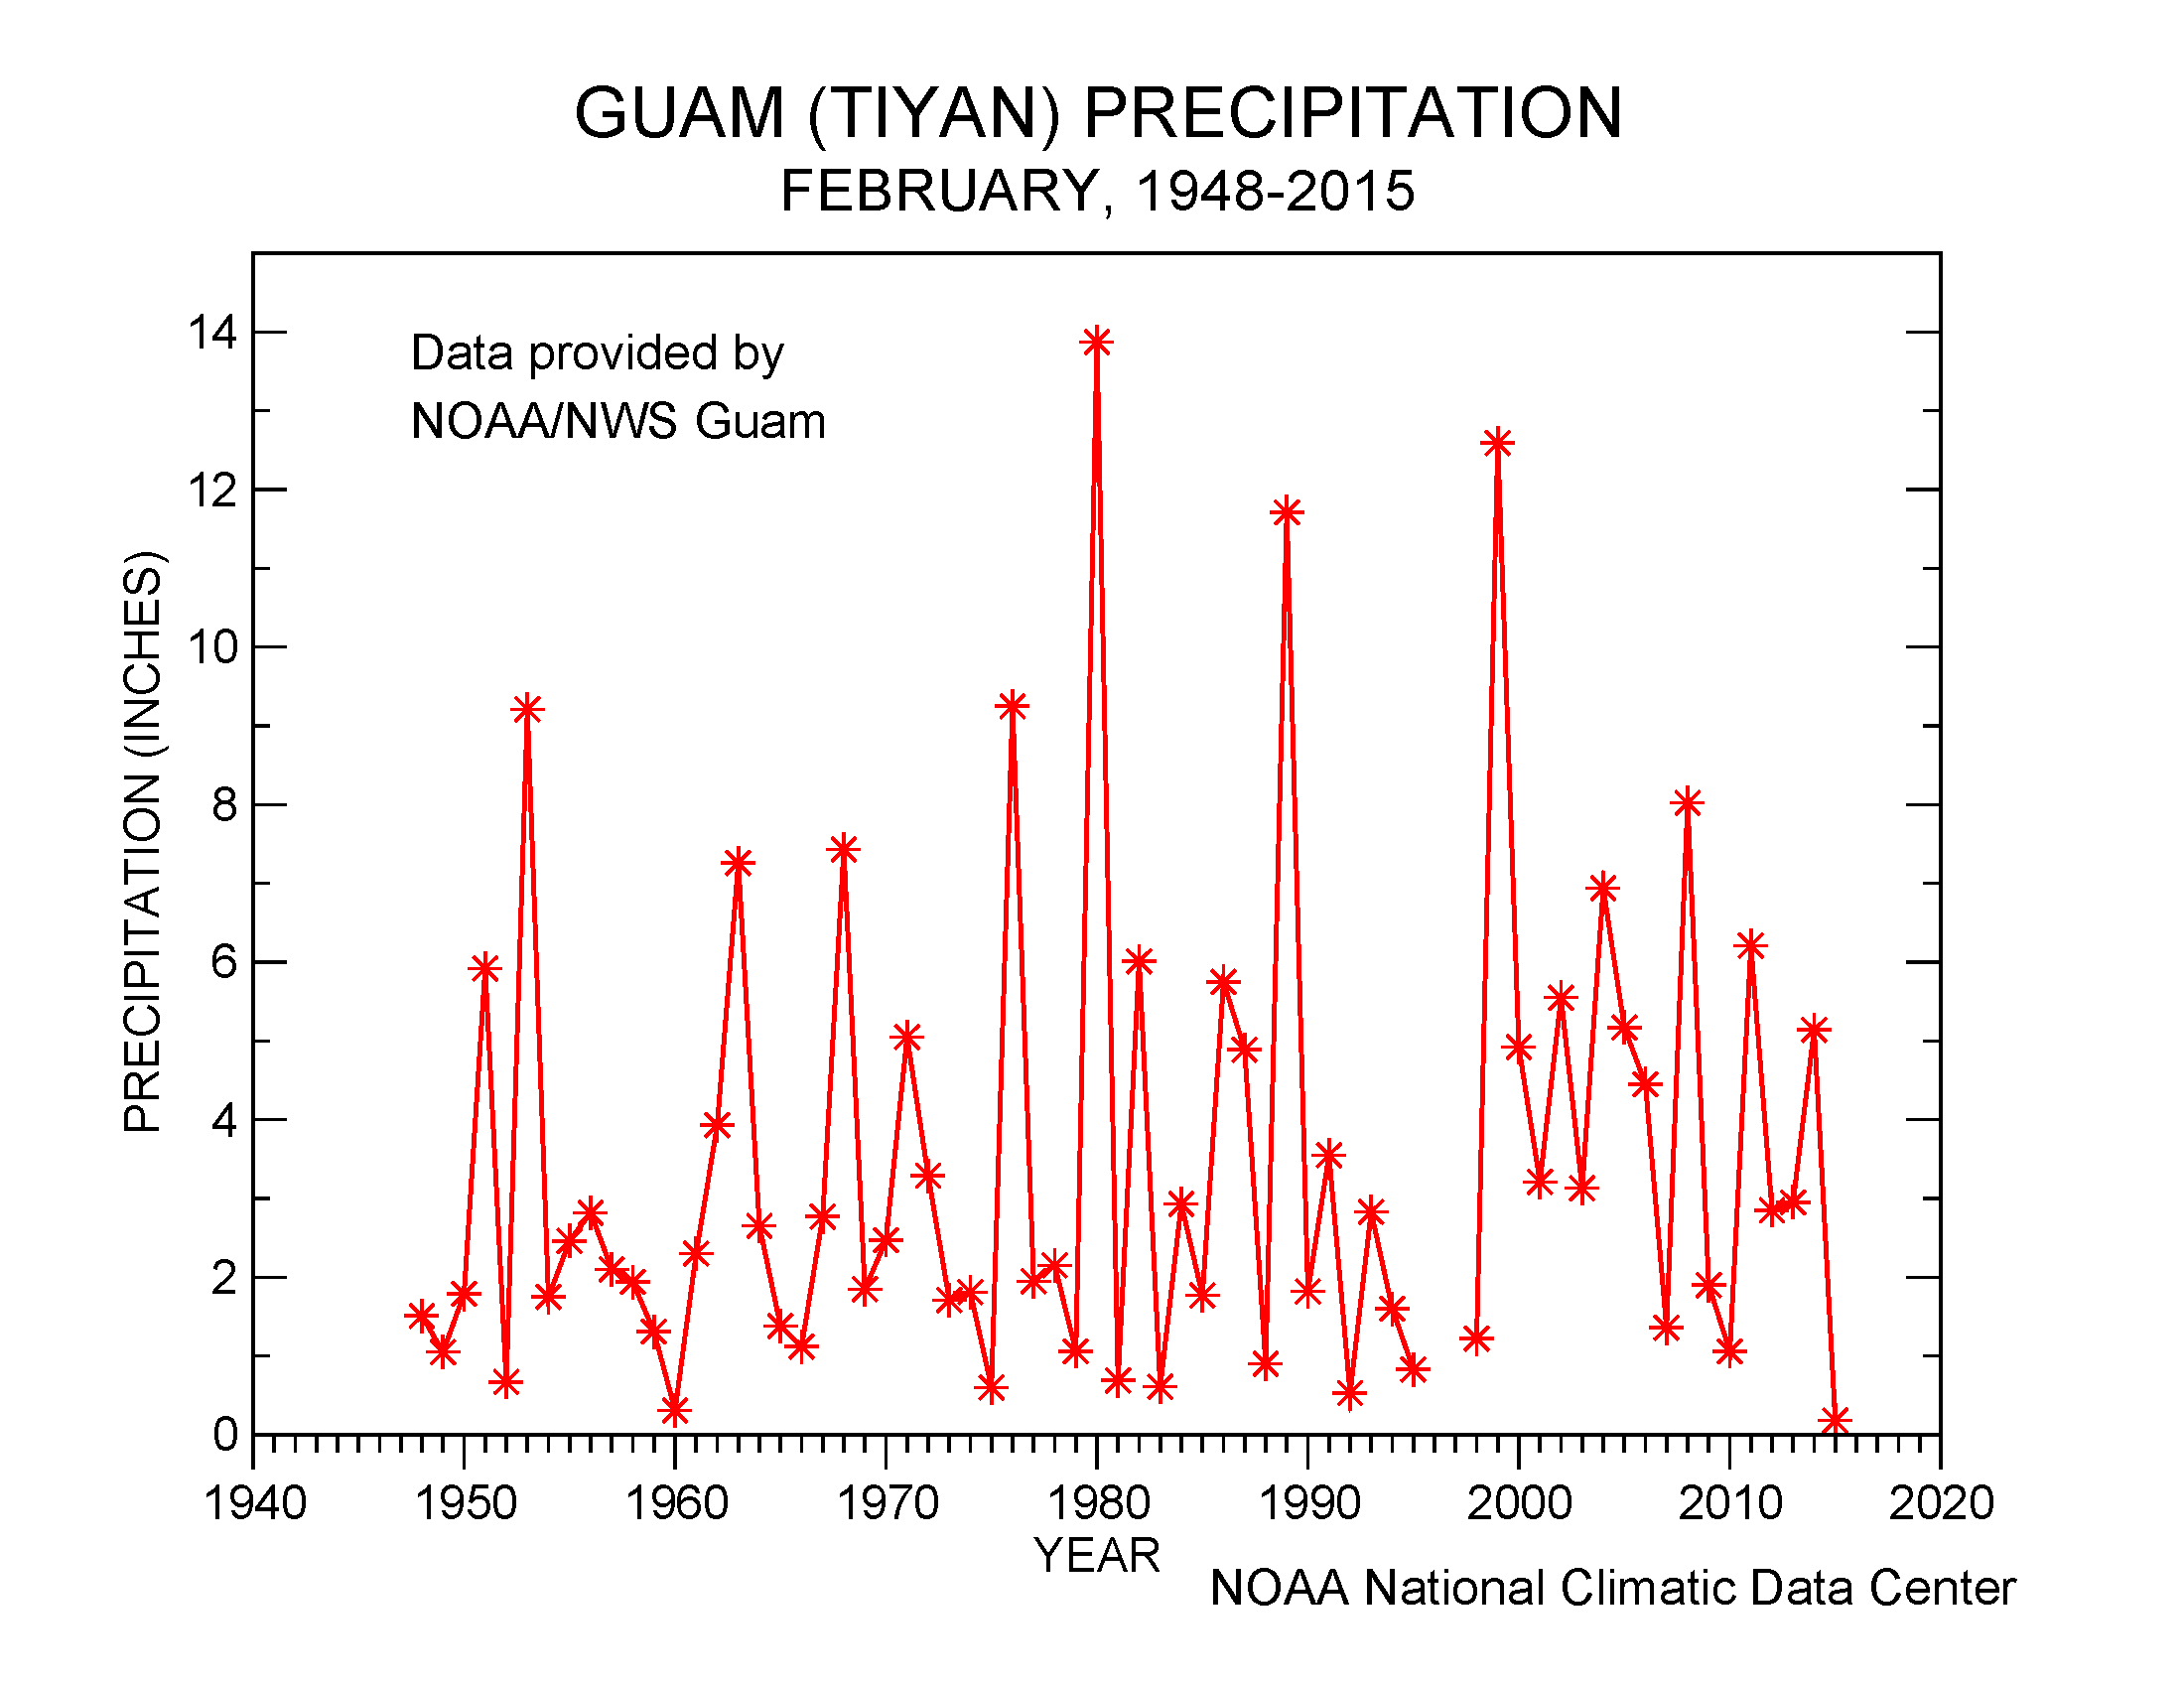 Guam precipitation, February, 1948-2015